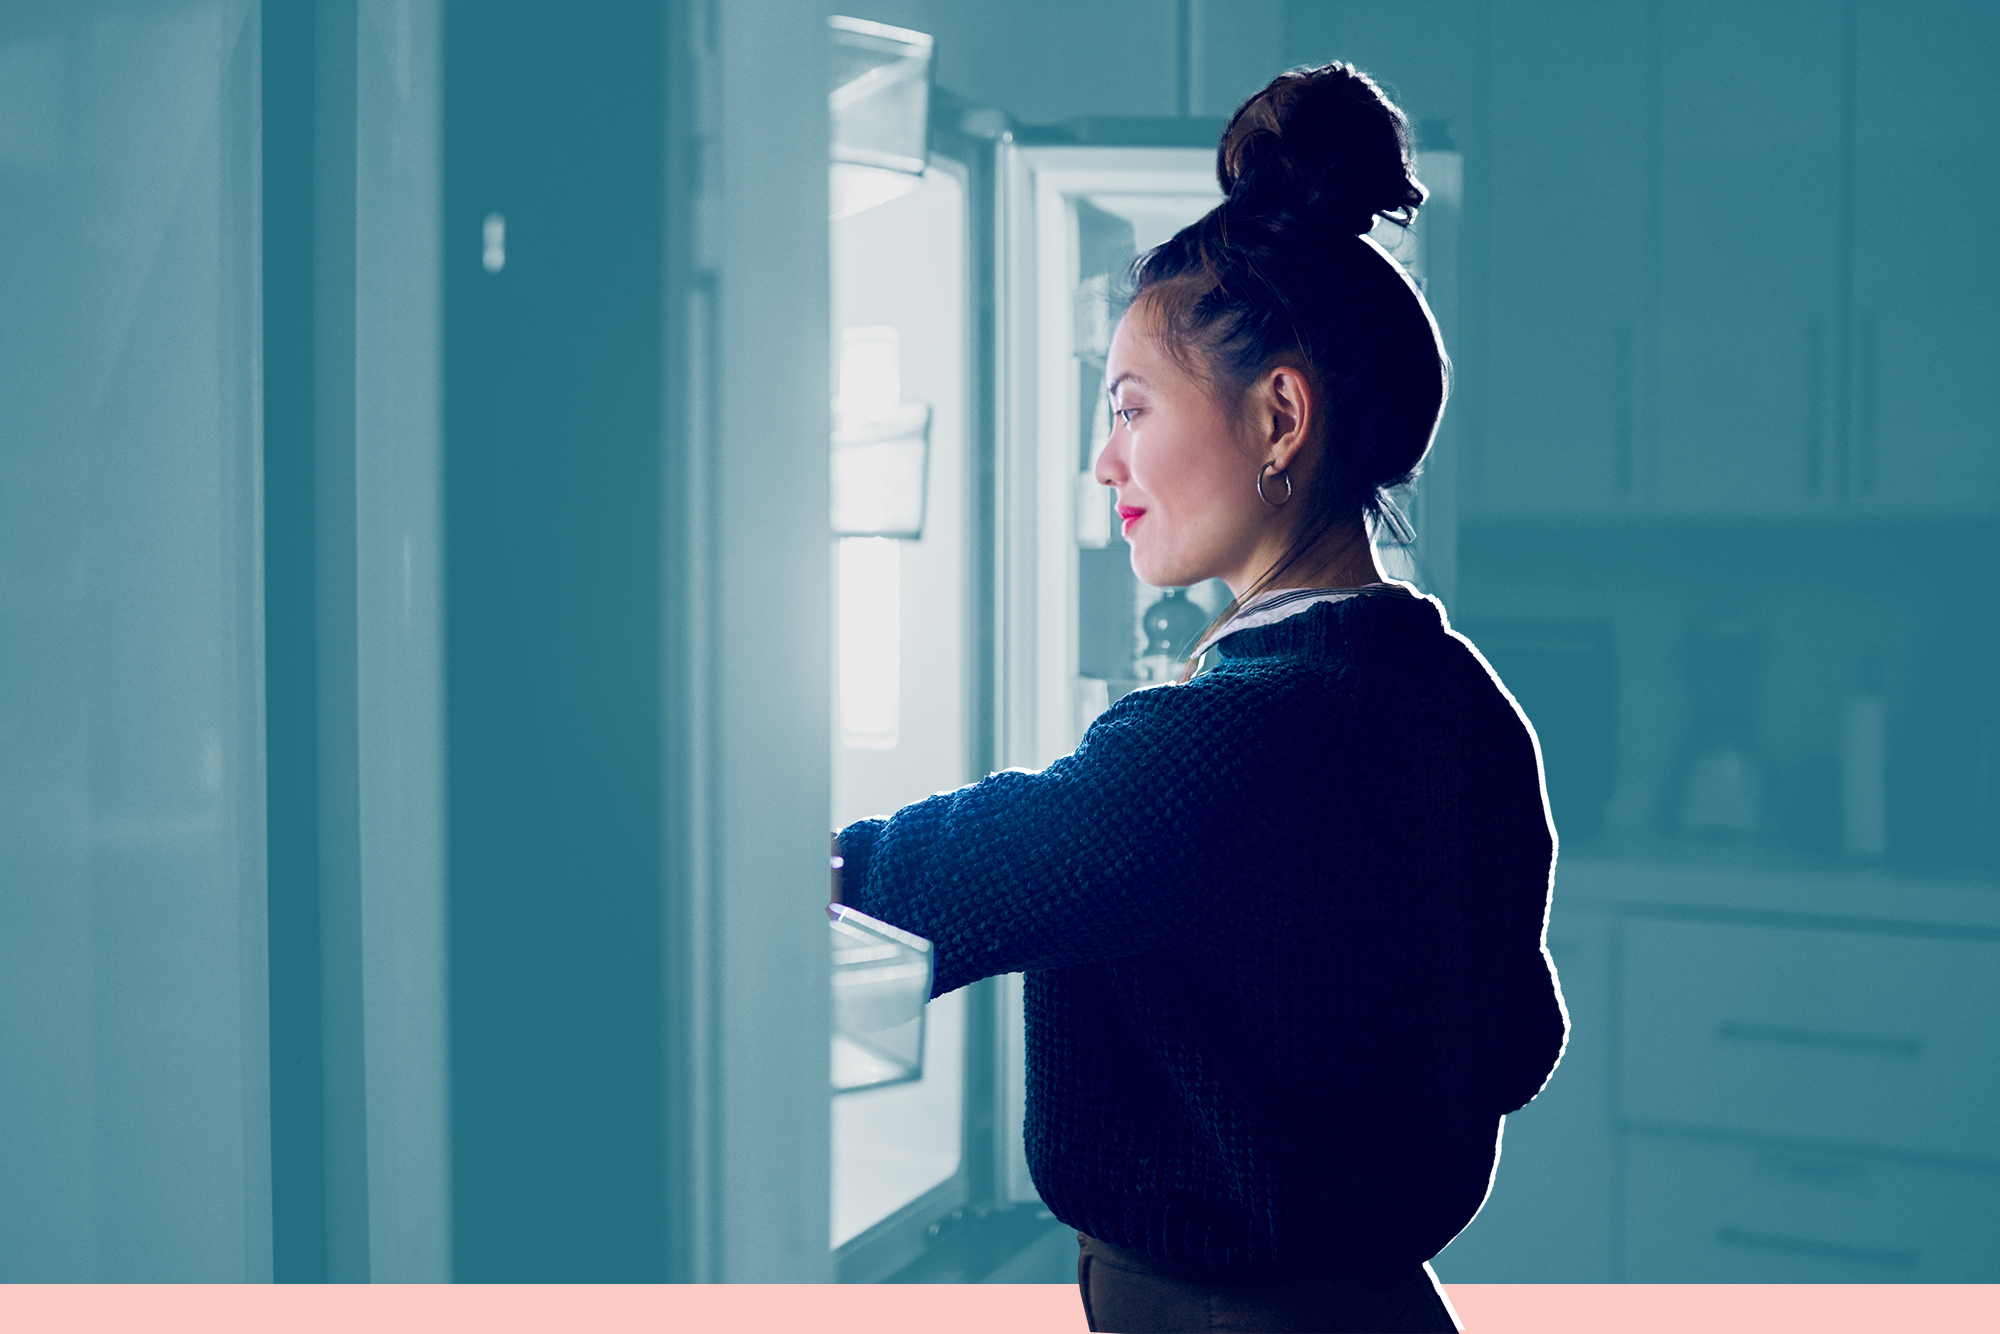 woman looking in a refrigerator at night